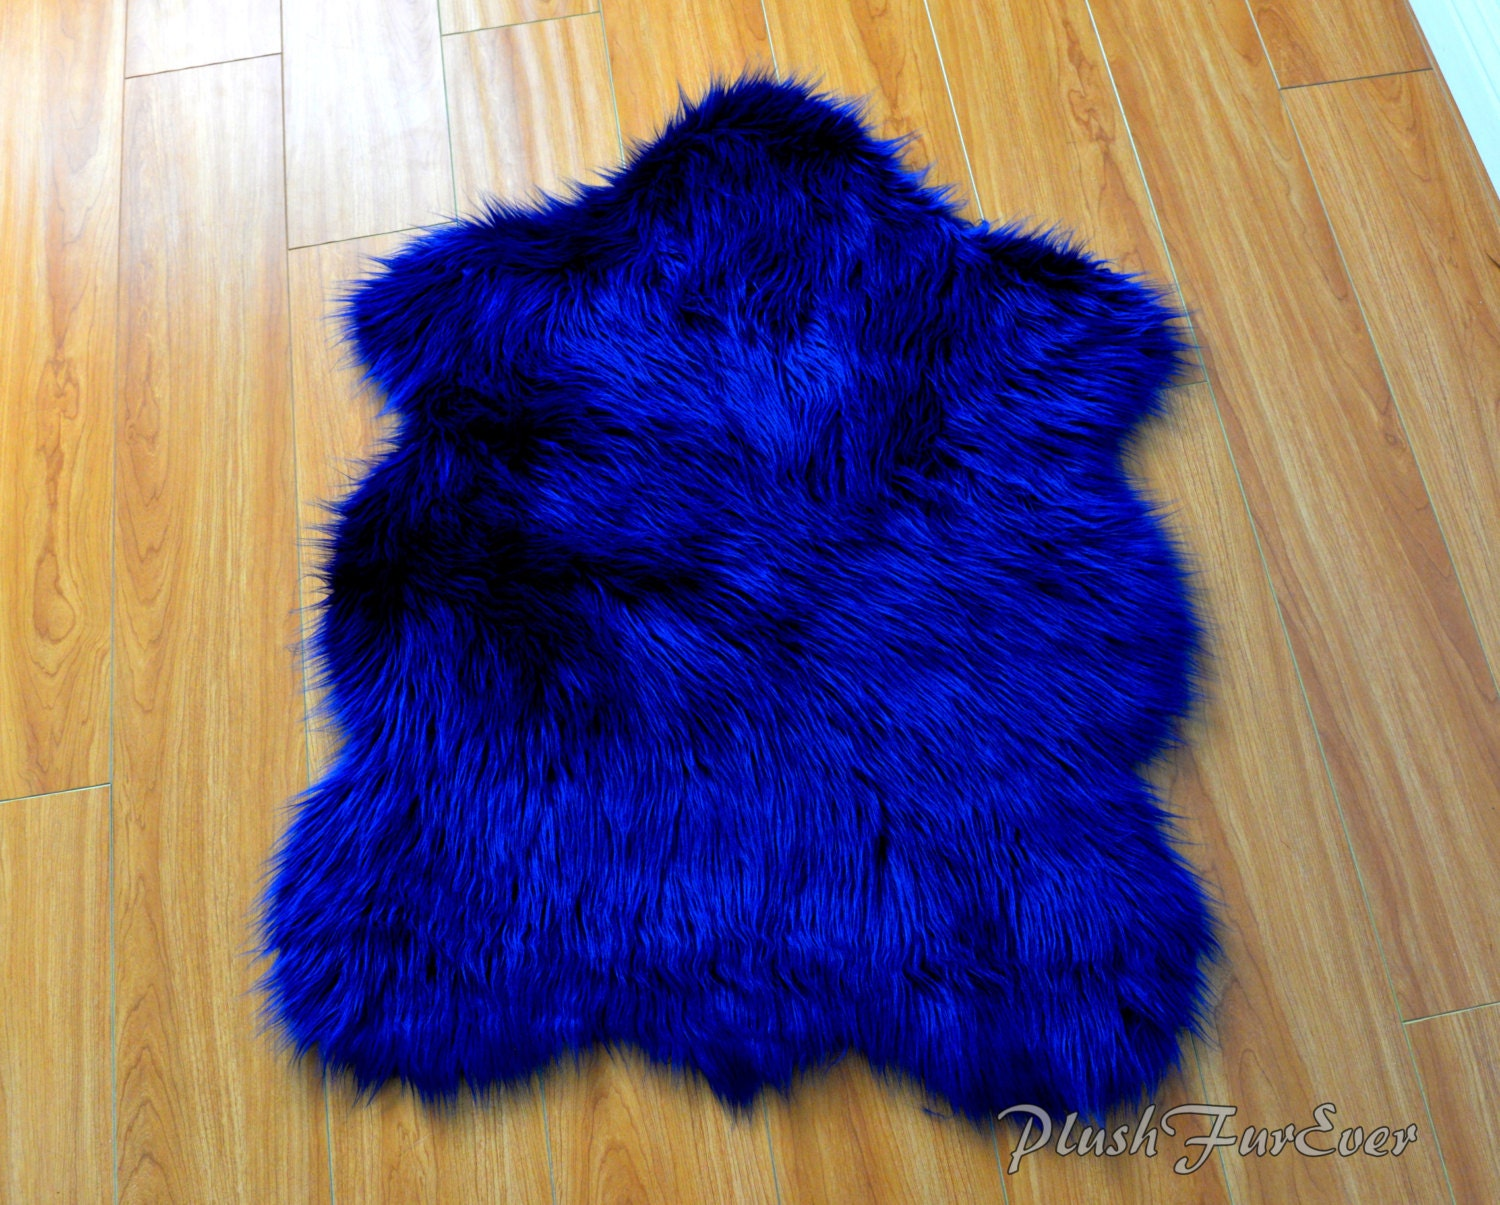 Navy Blue Shaggy Plush Sheepskin Faux Fur Nursery Rug Luxury